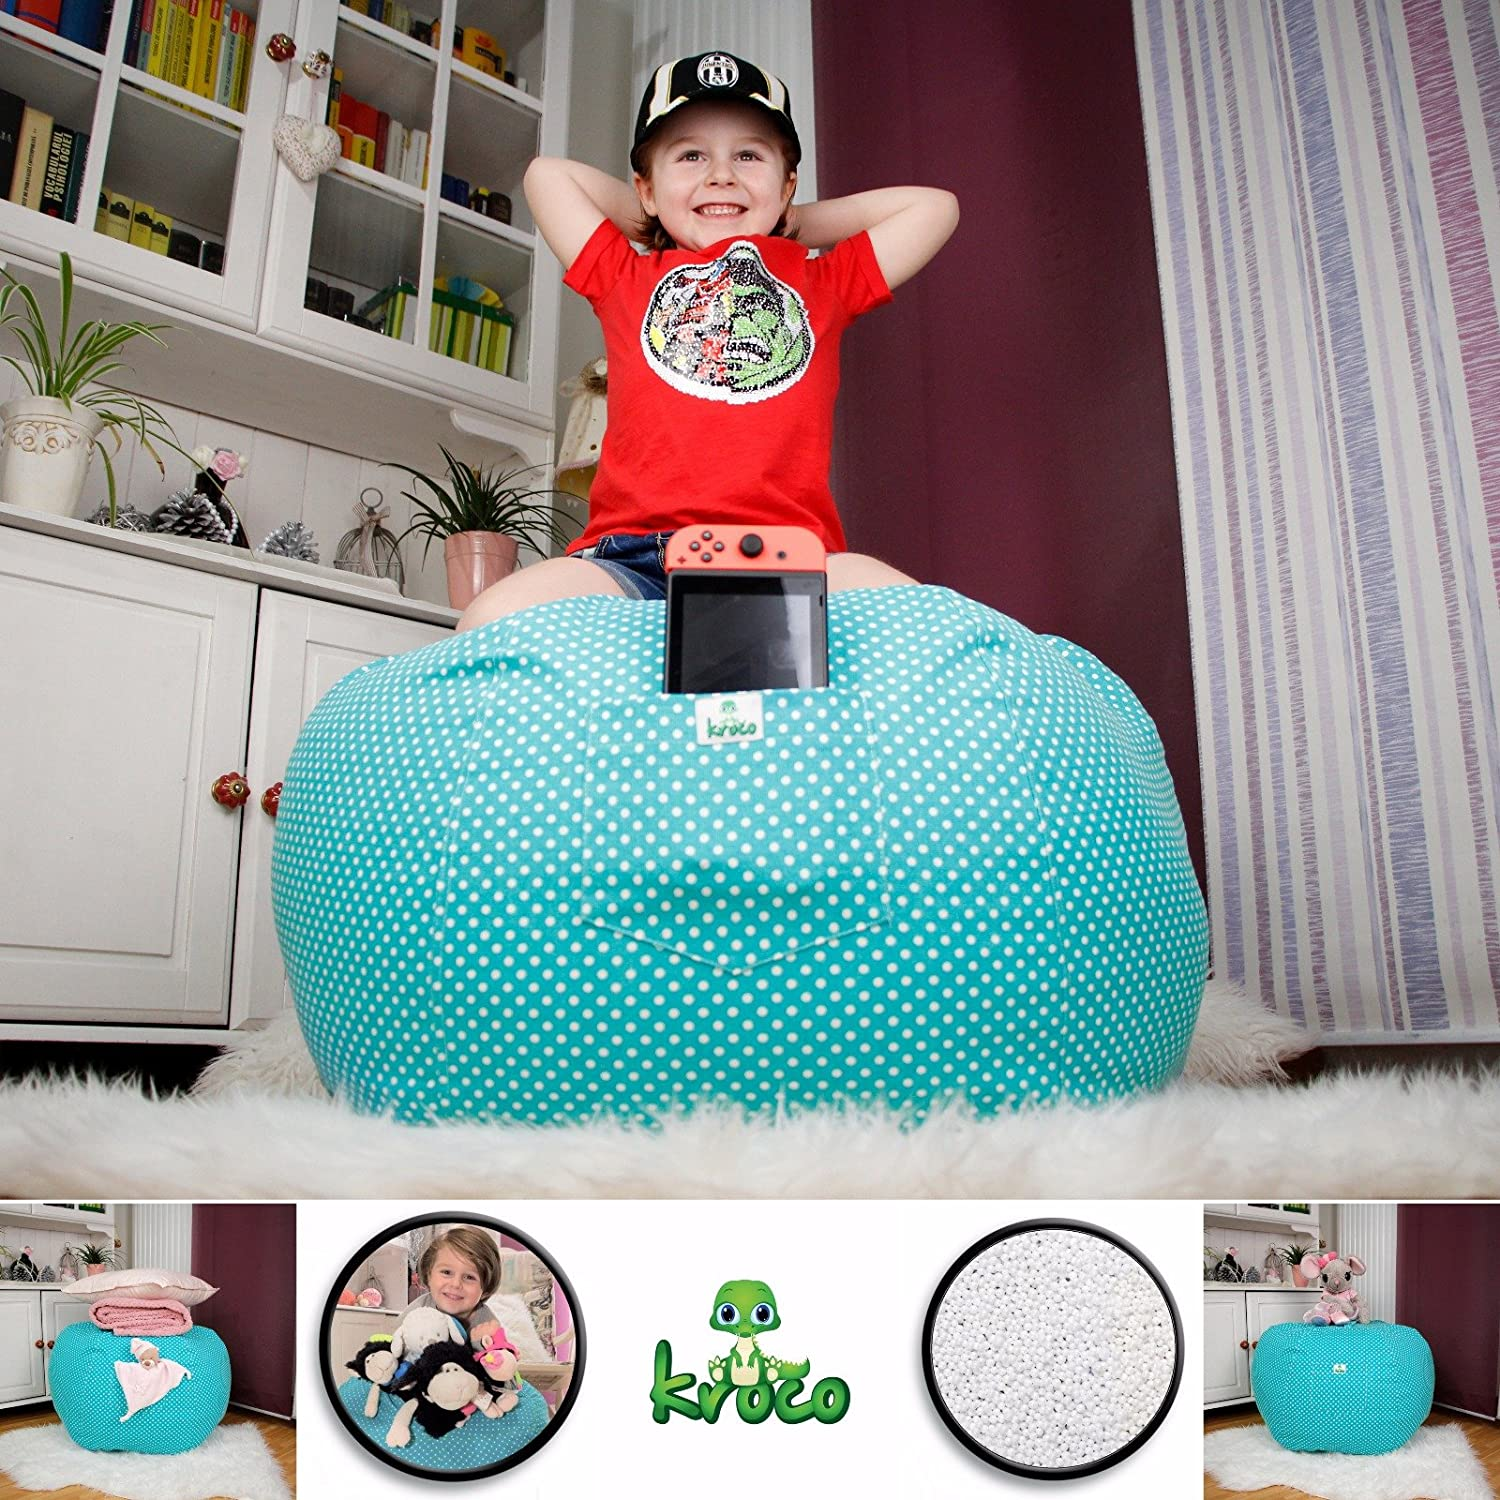 Kroco Stuffed Animal Storage Bean Bag 90+ Plush Toys Holder and Organizer for Girls Large Beanbag Chairs for Kids 100/% Cotton Canvas Cover Large, Teal Kroco Store